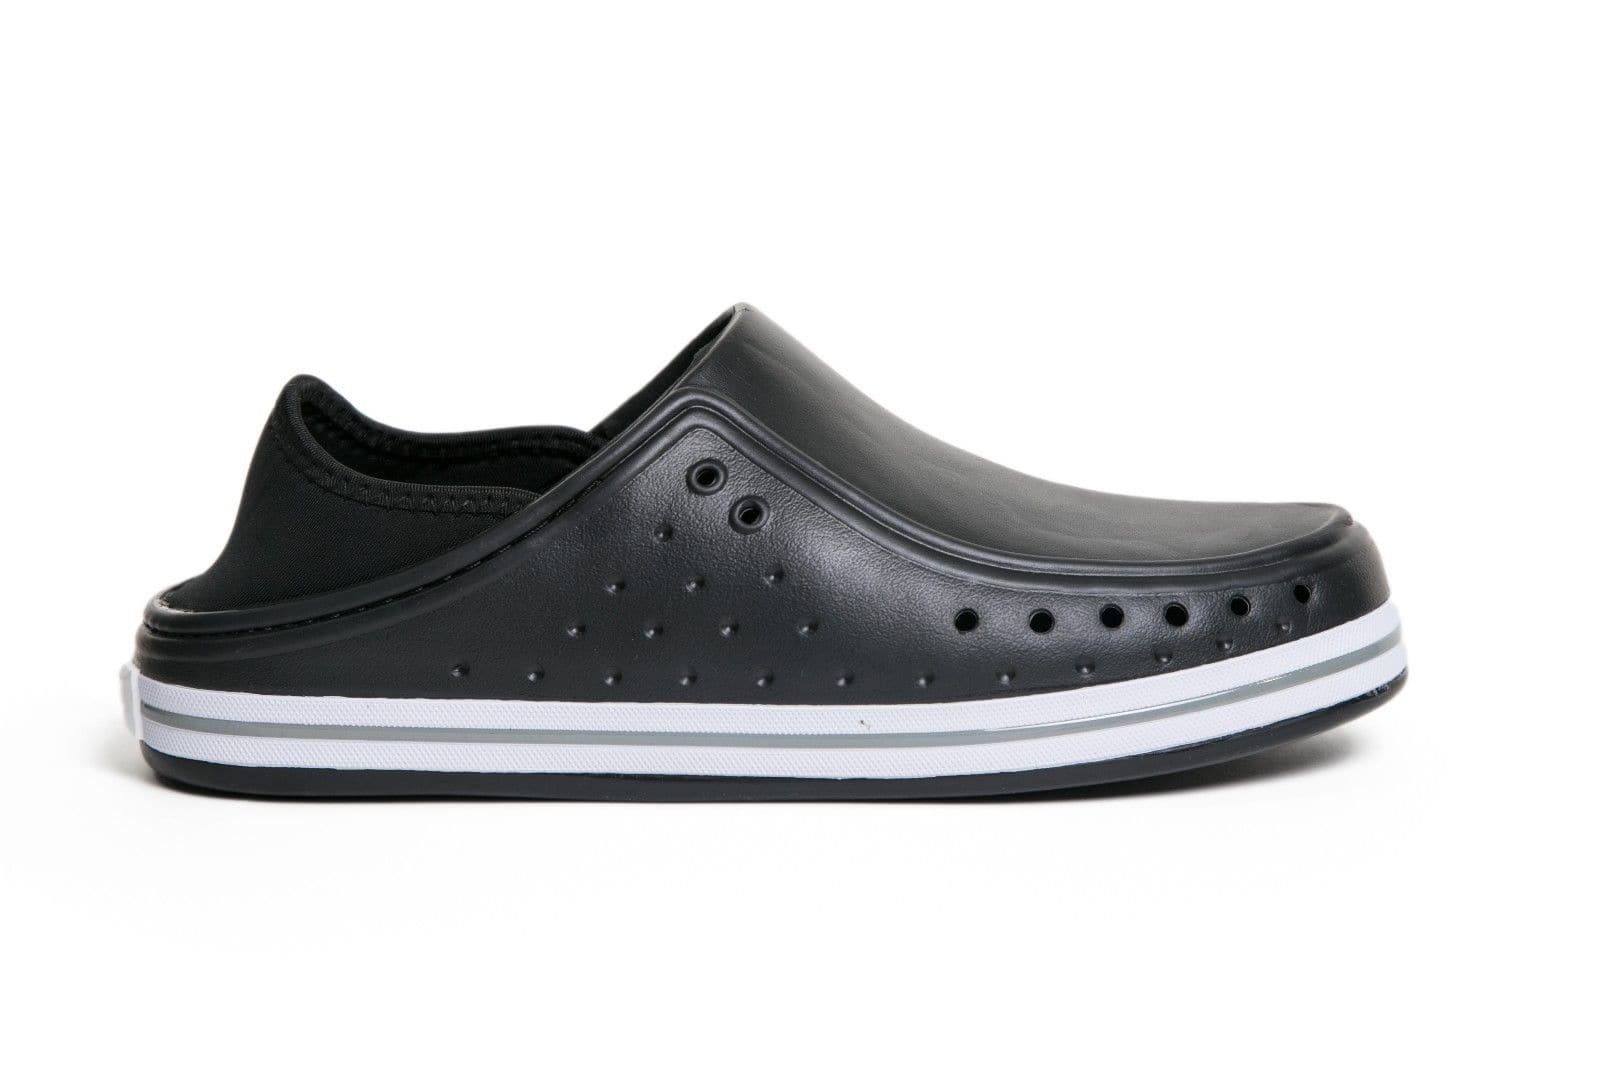 Swiss Wear Casual Loafer Mens Slip-On  $7.50 + Free Shipping